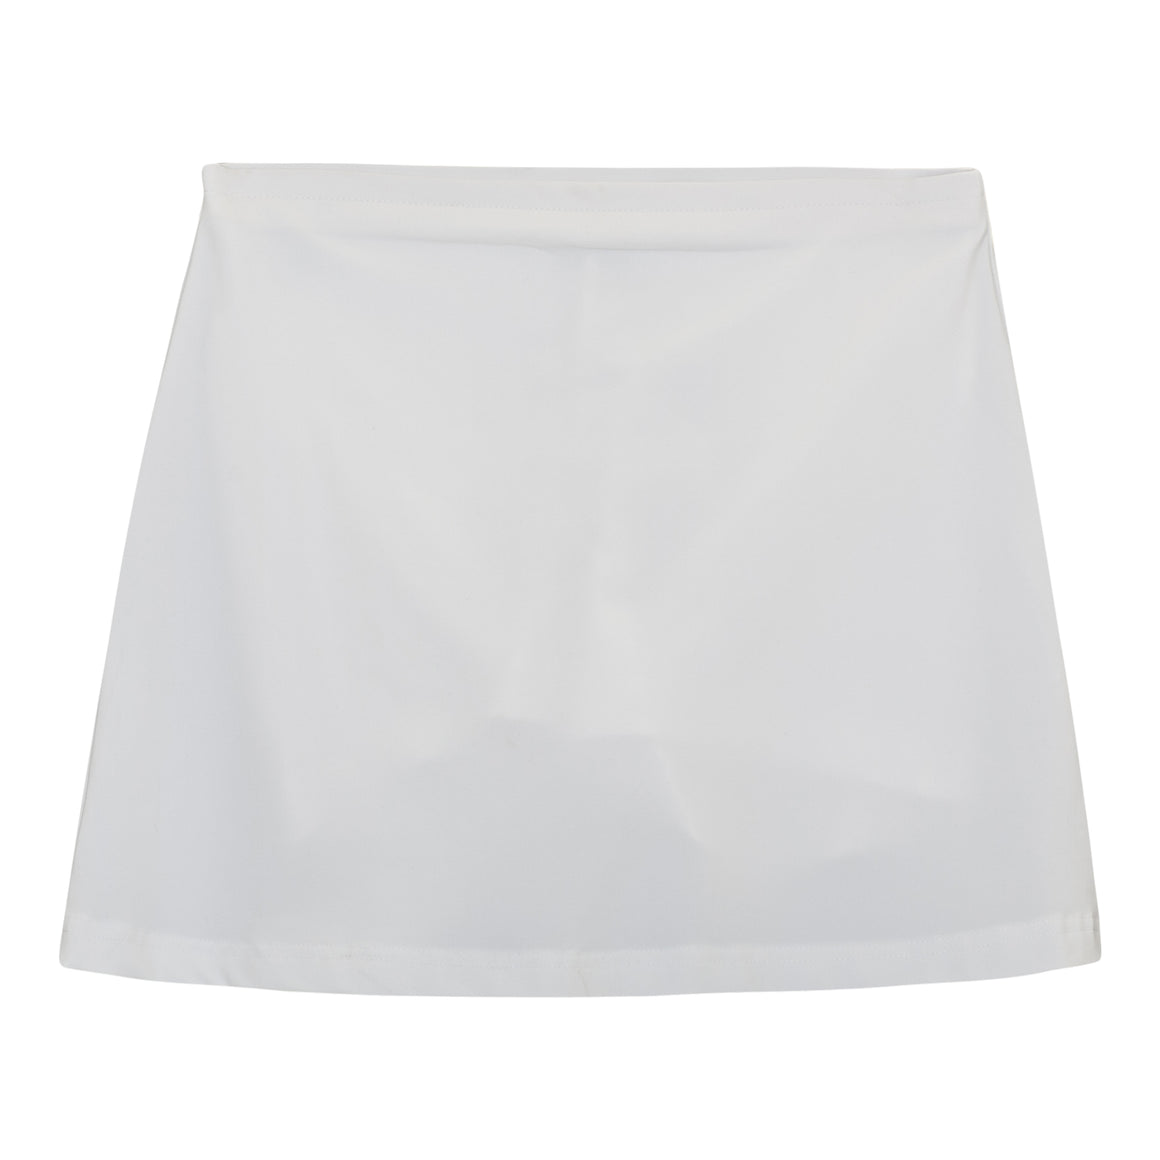 School Girls' Games Skort in White